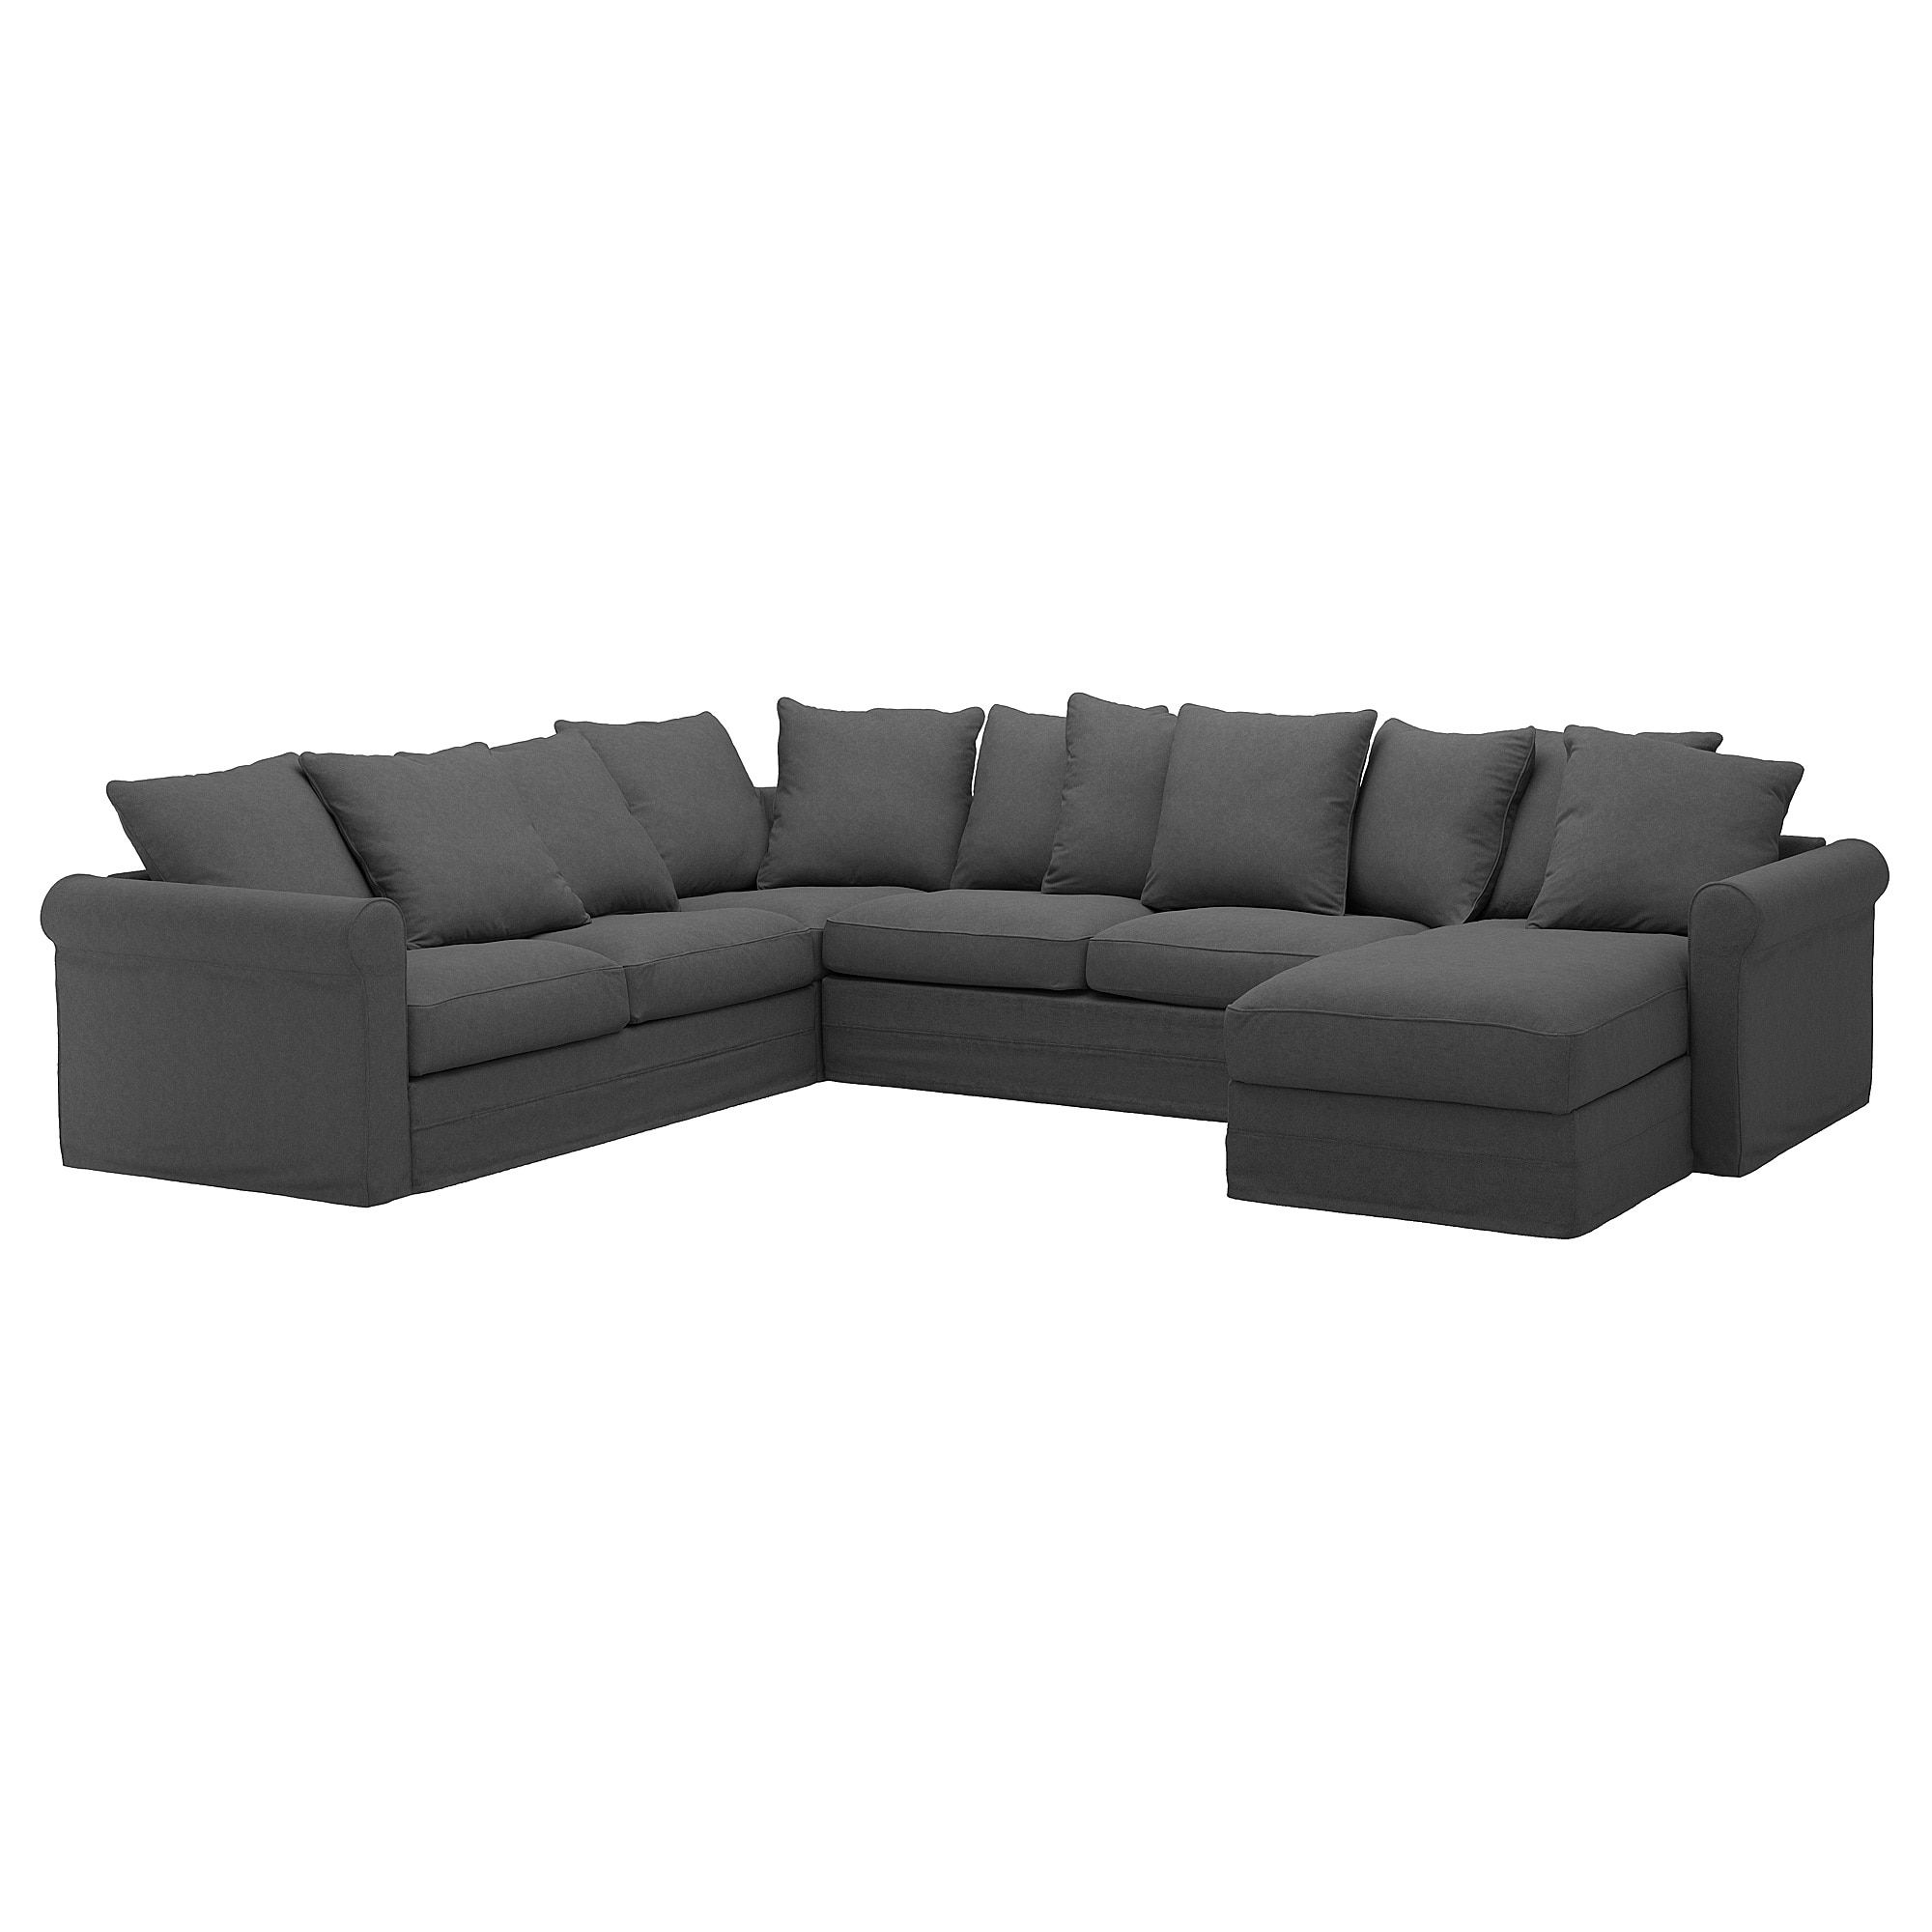 GRÖNLID Corner sofabed, 5seat, with chaise longue